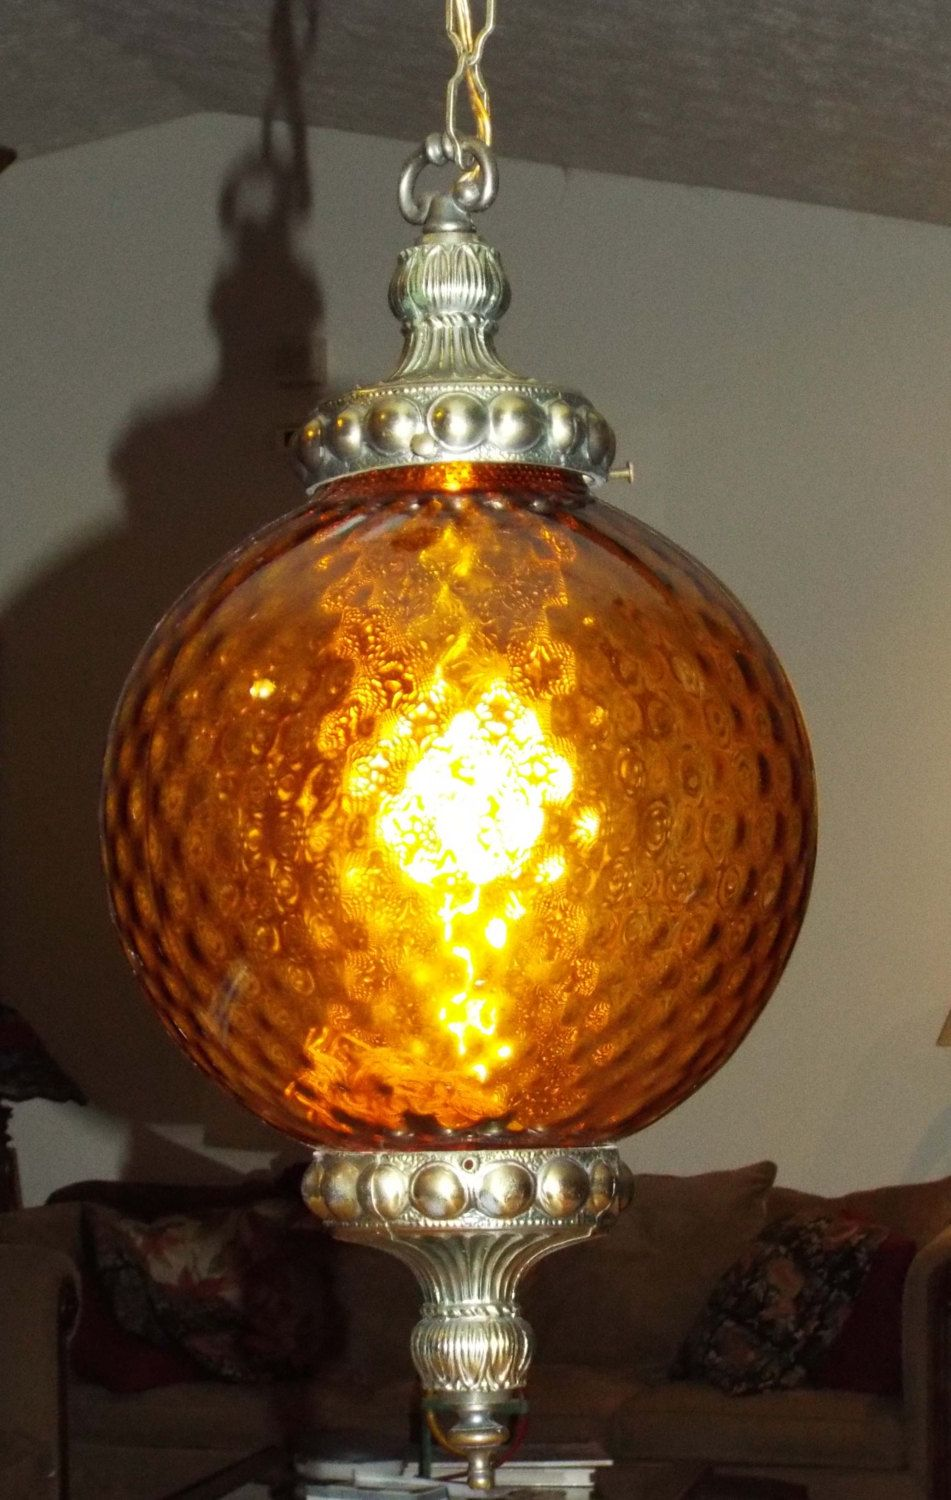 Lamp light fixture hanging swag pendant amber glass globe with